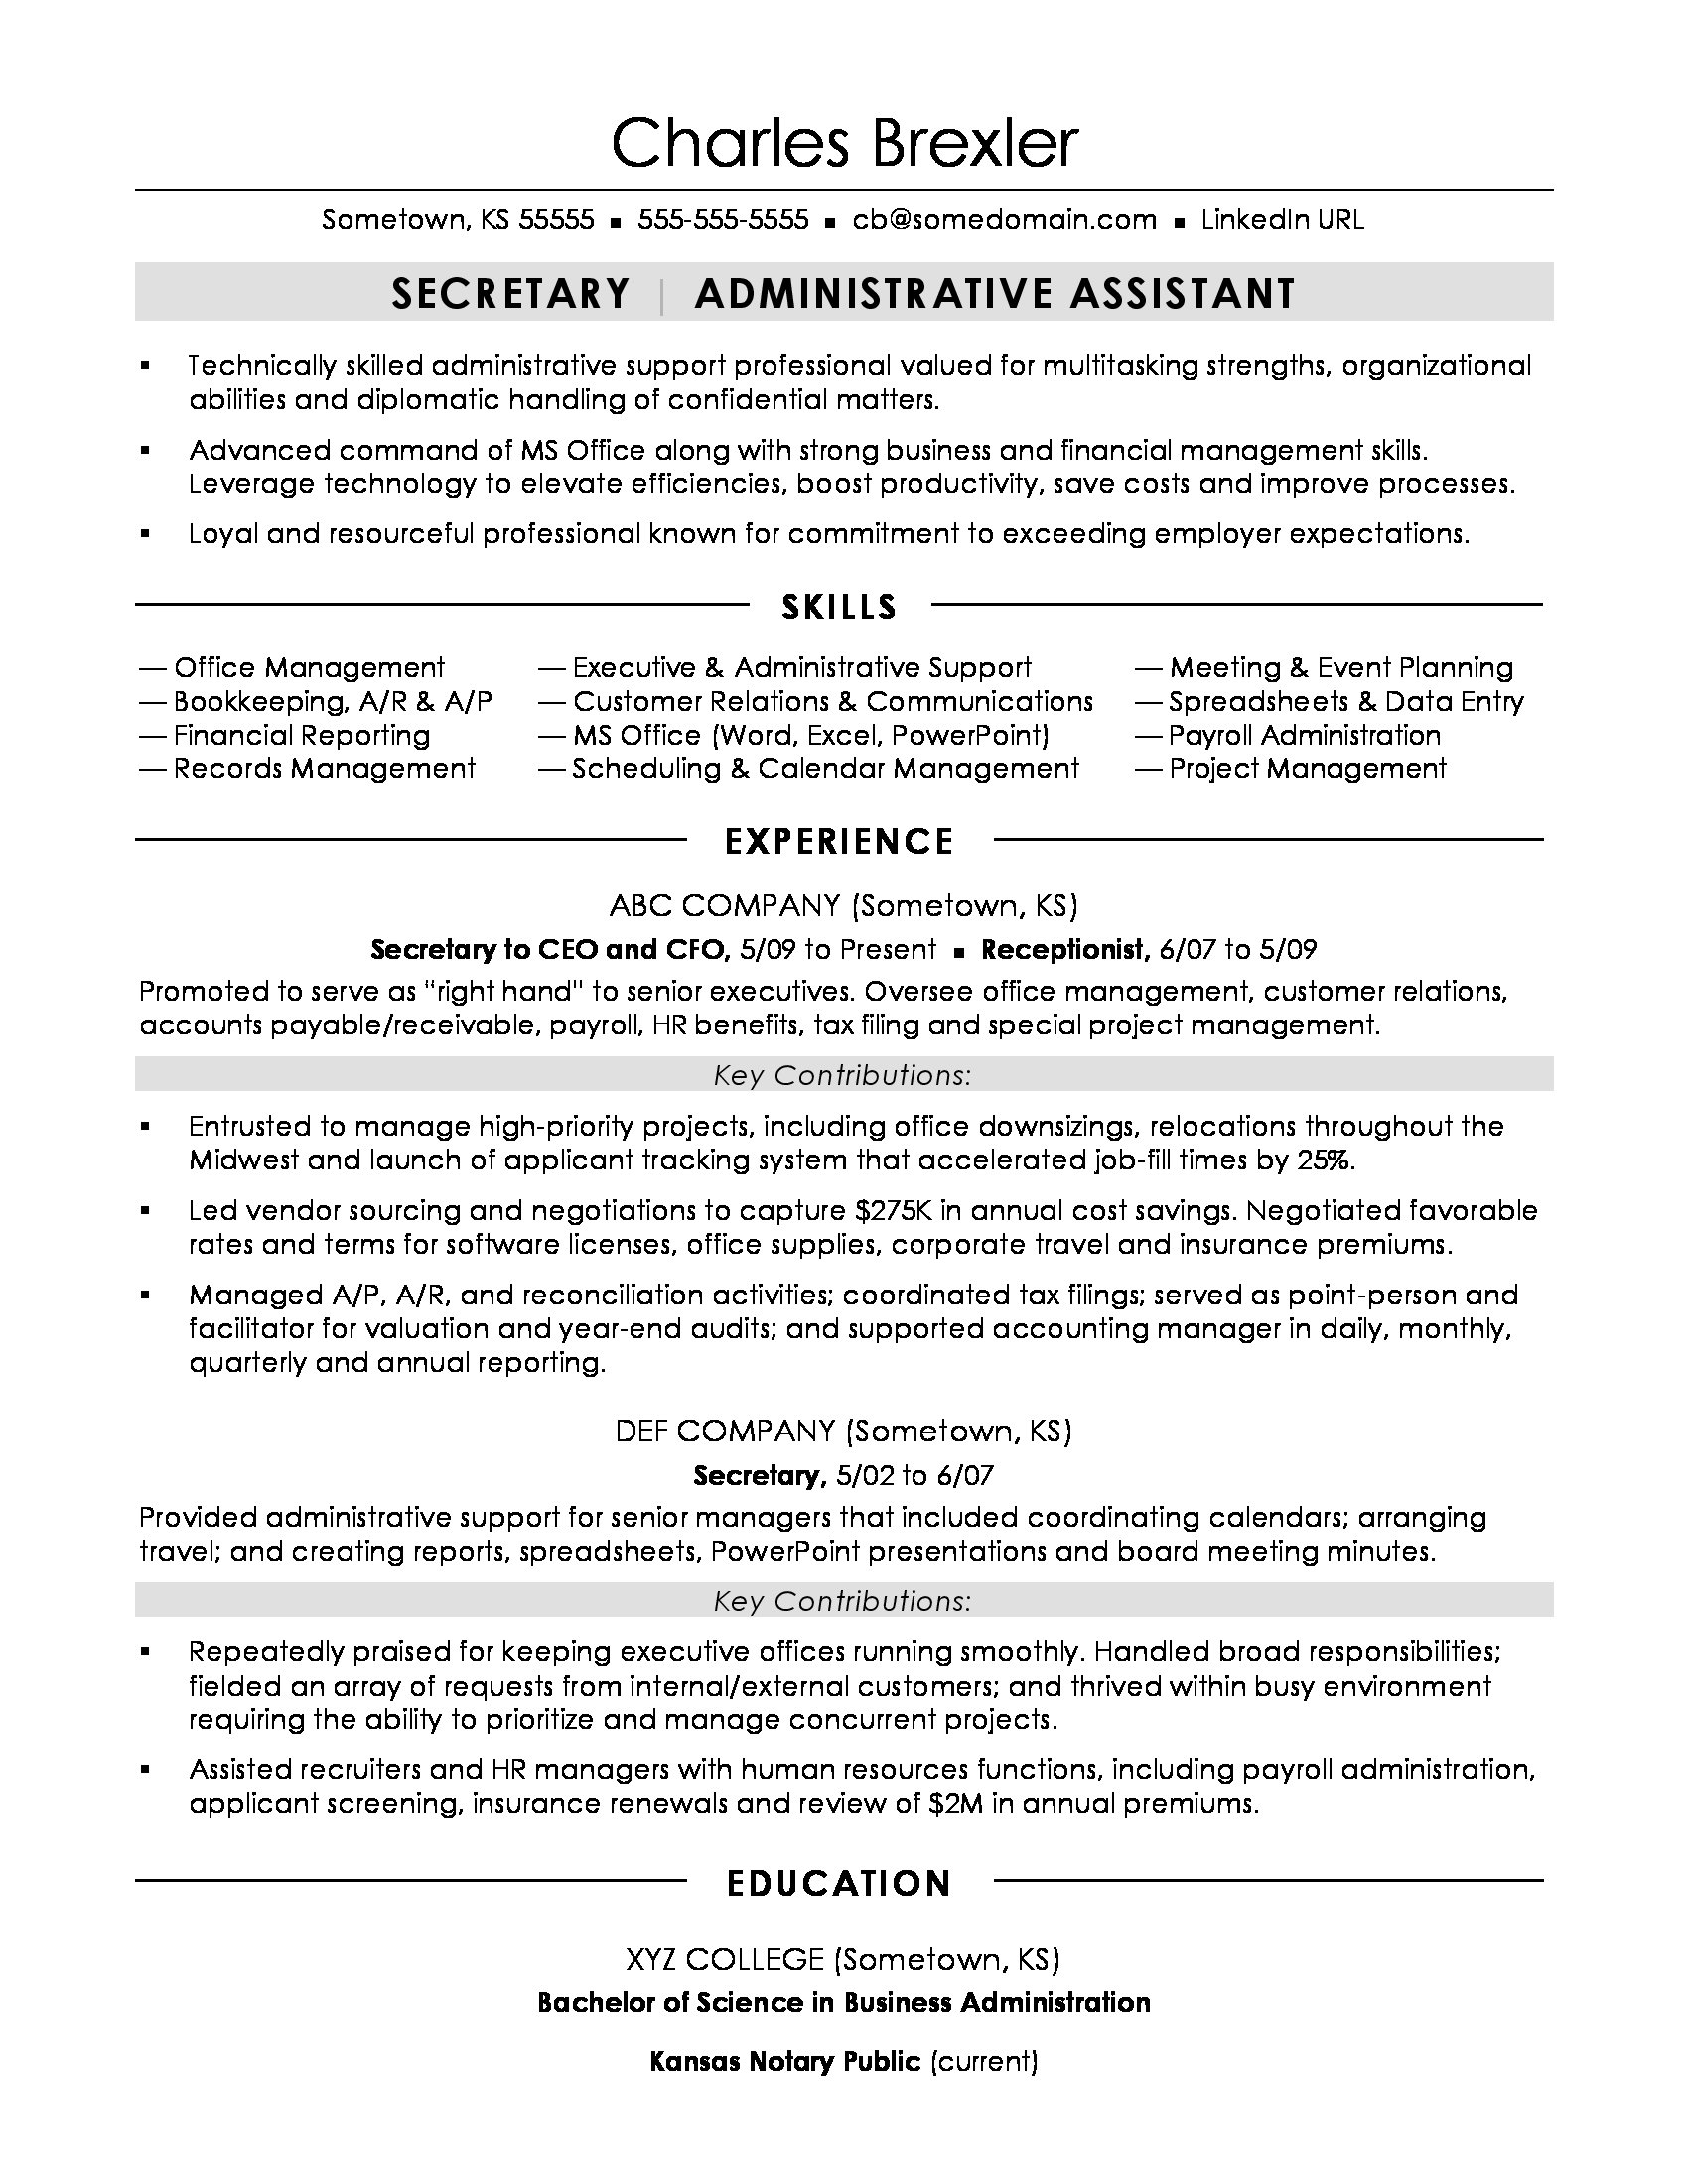 secretary resume sample - Strengths To Be Mentioned In Resume